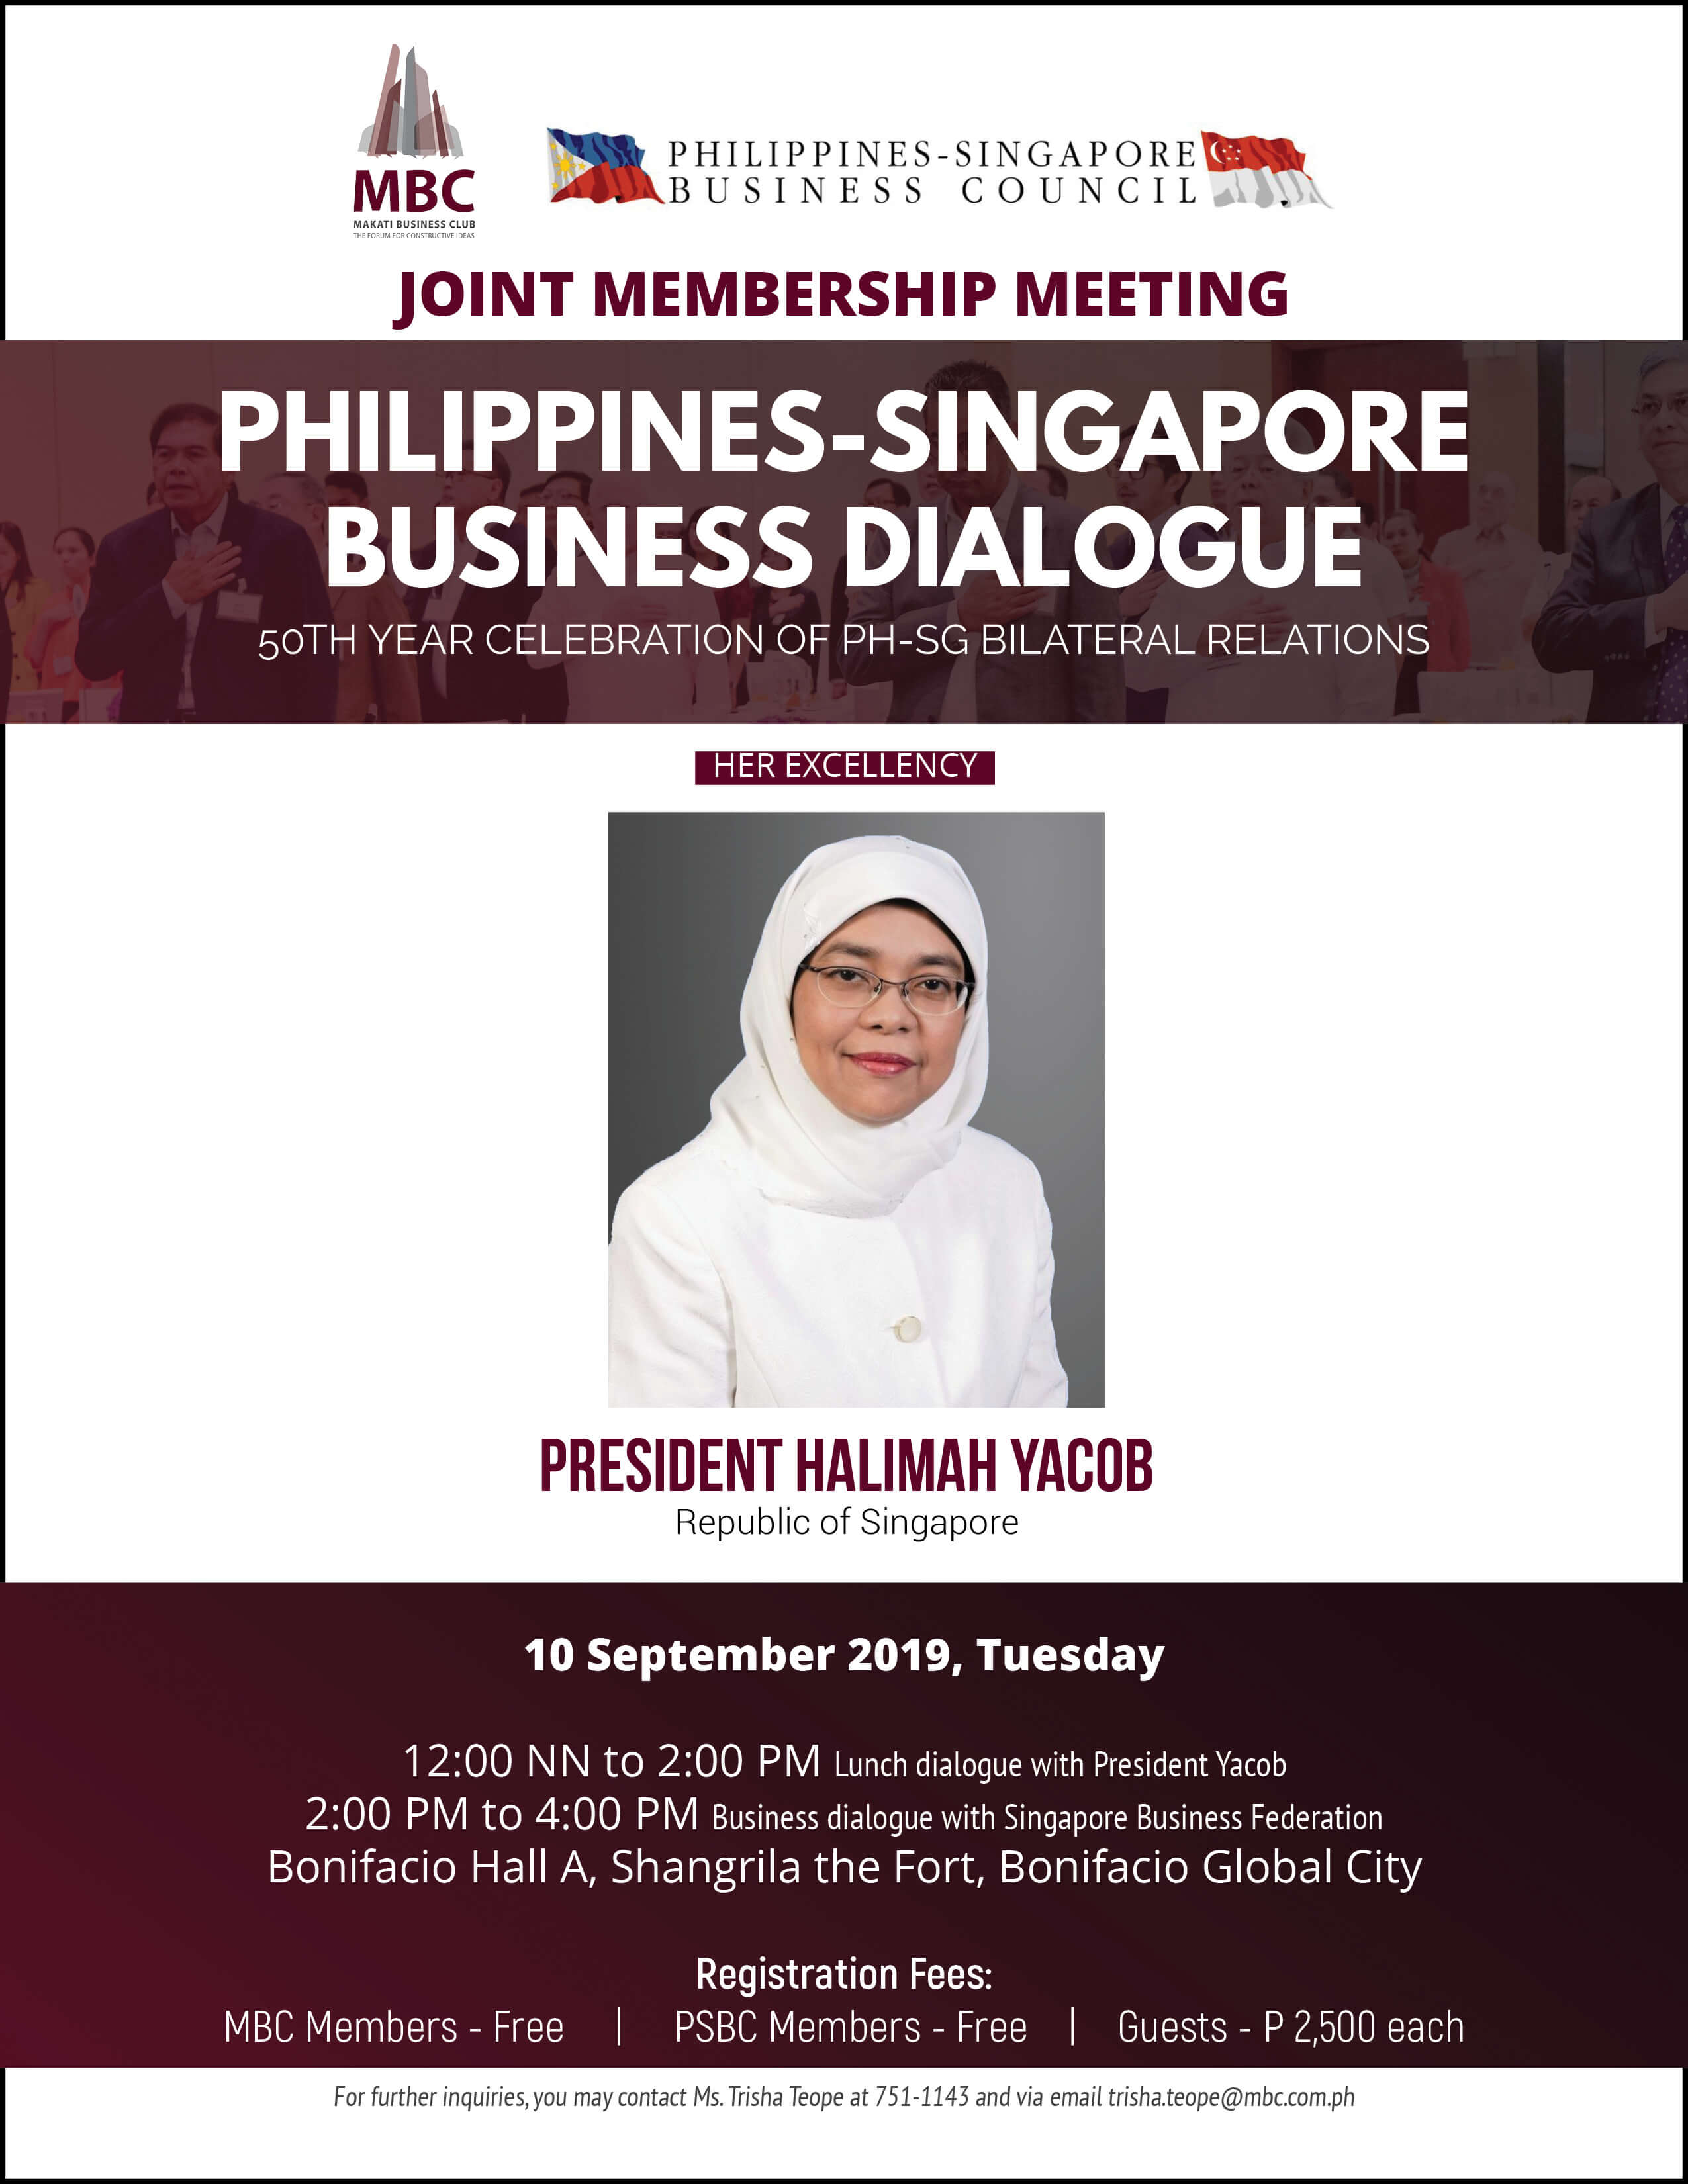 Philippines-Singapore Business Dialogue